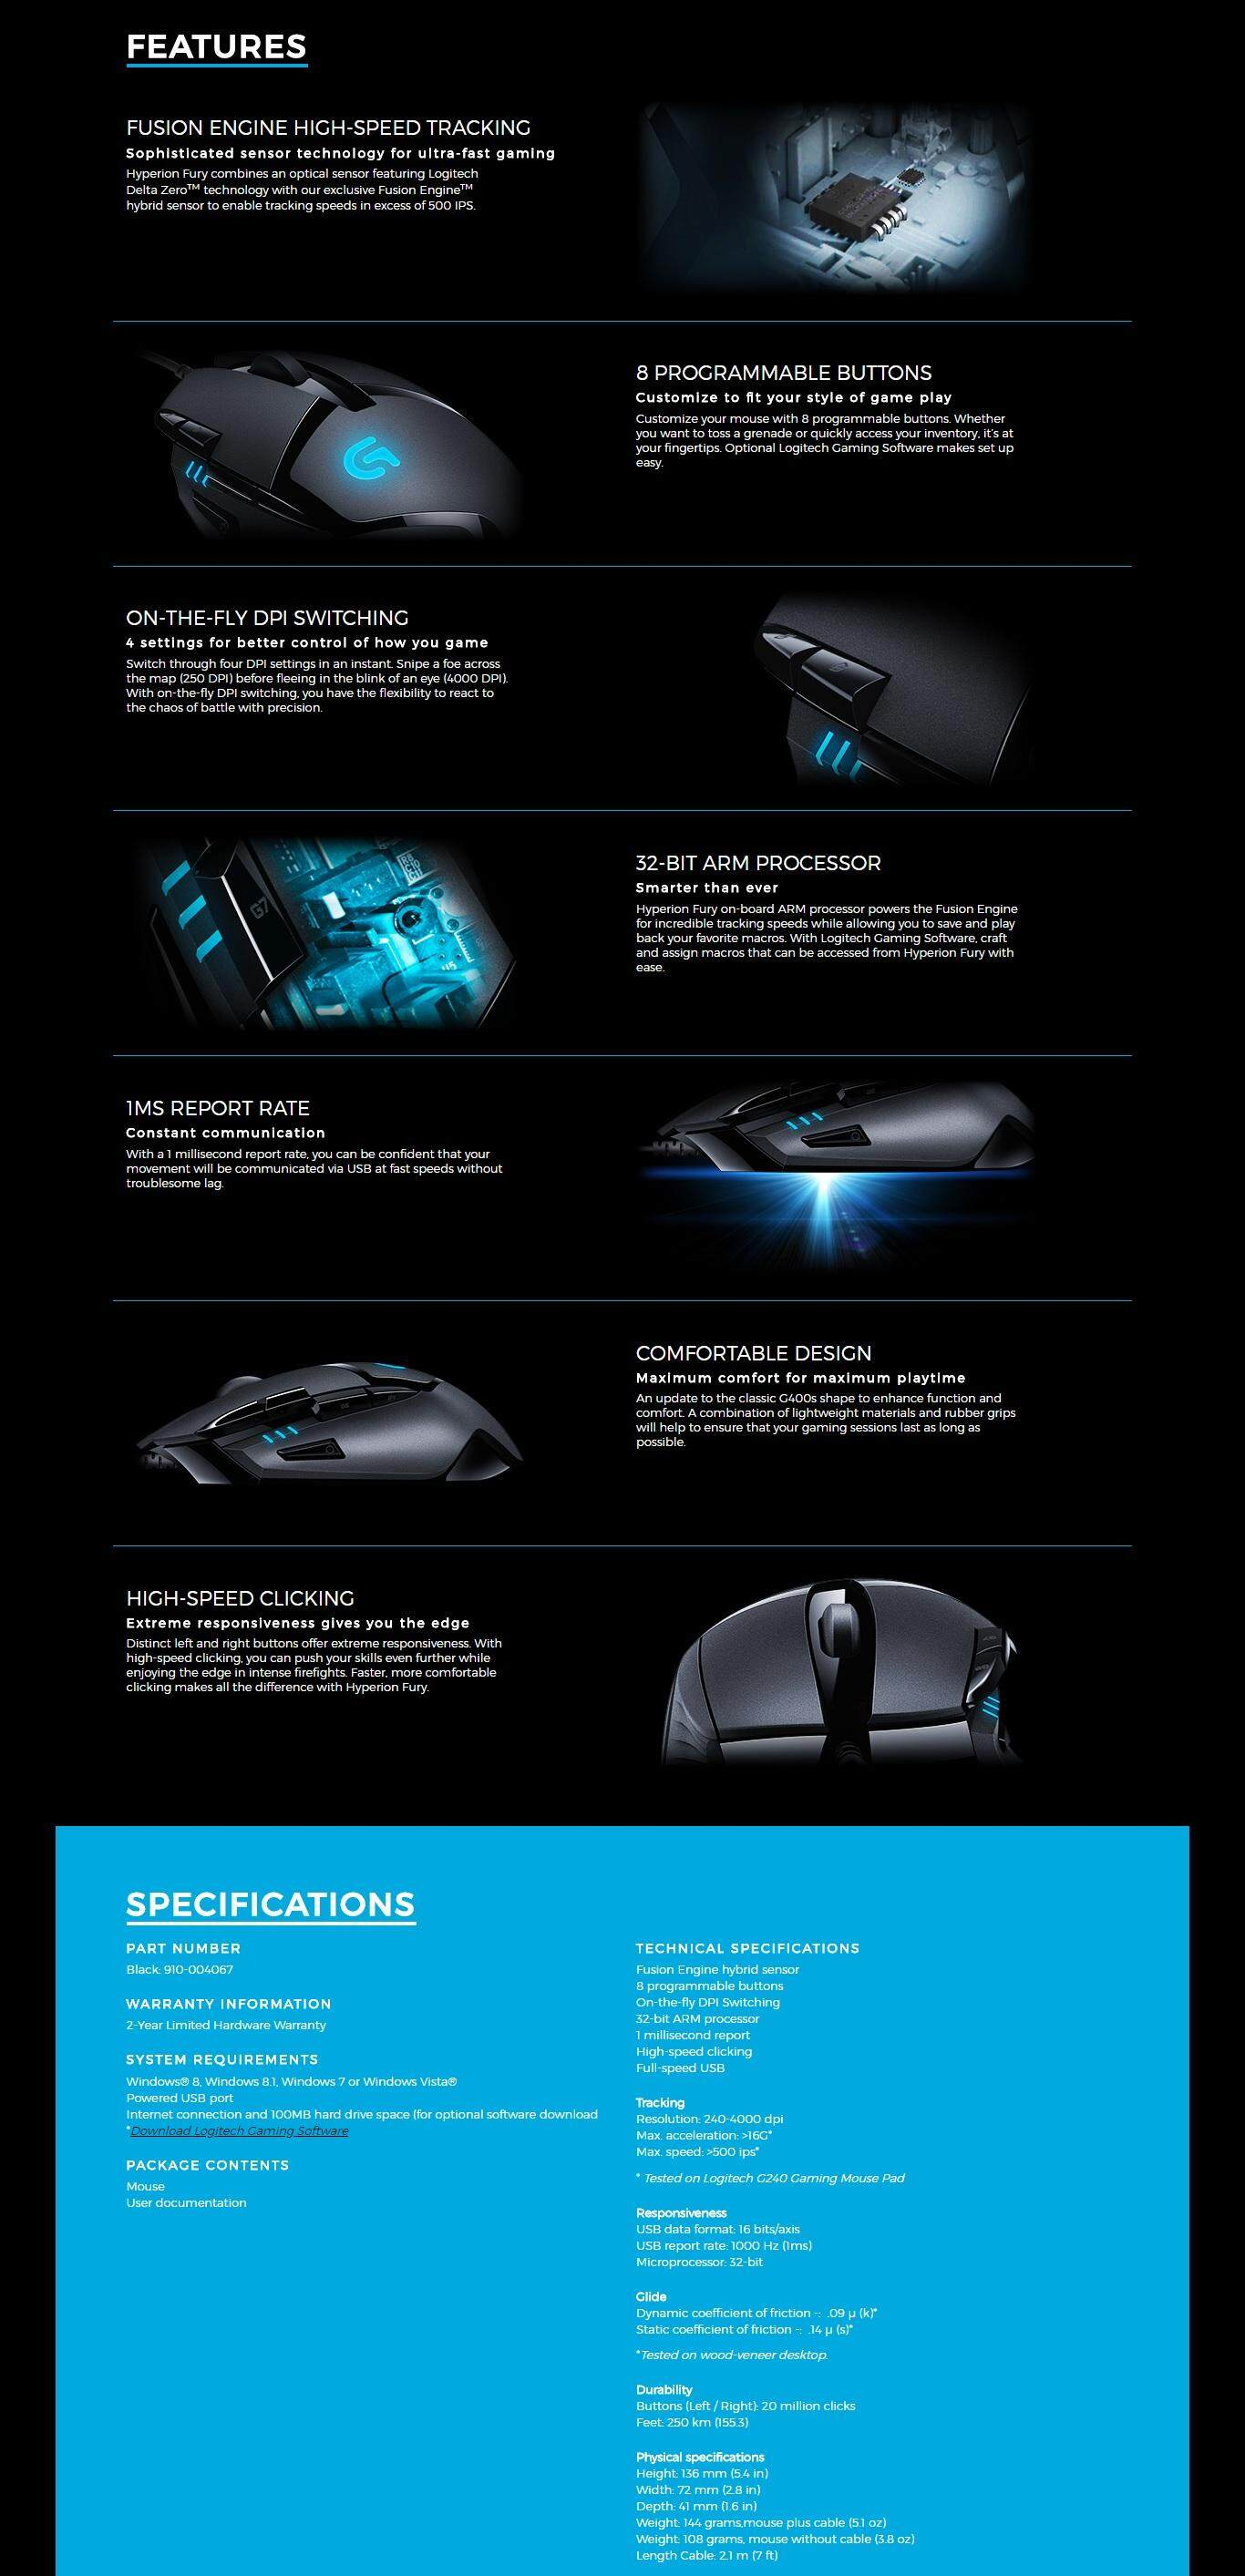 cdd7c7bac83 Logitech G402 Hyperion Fury ULTRA-FAST FPS Gaming Mouse BDZ @ Best ...